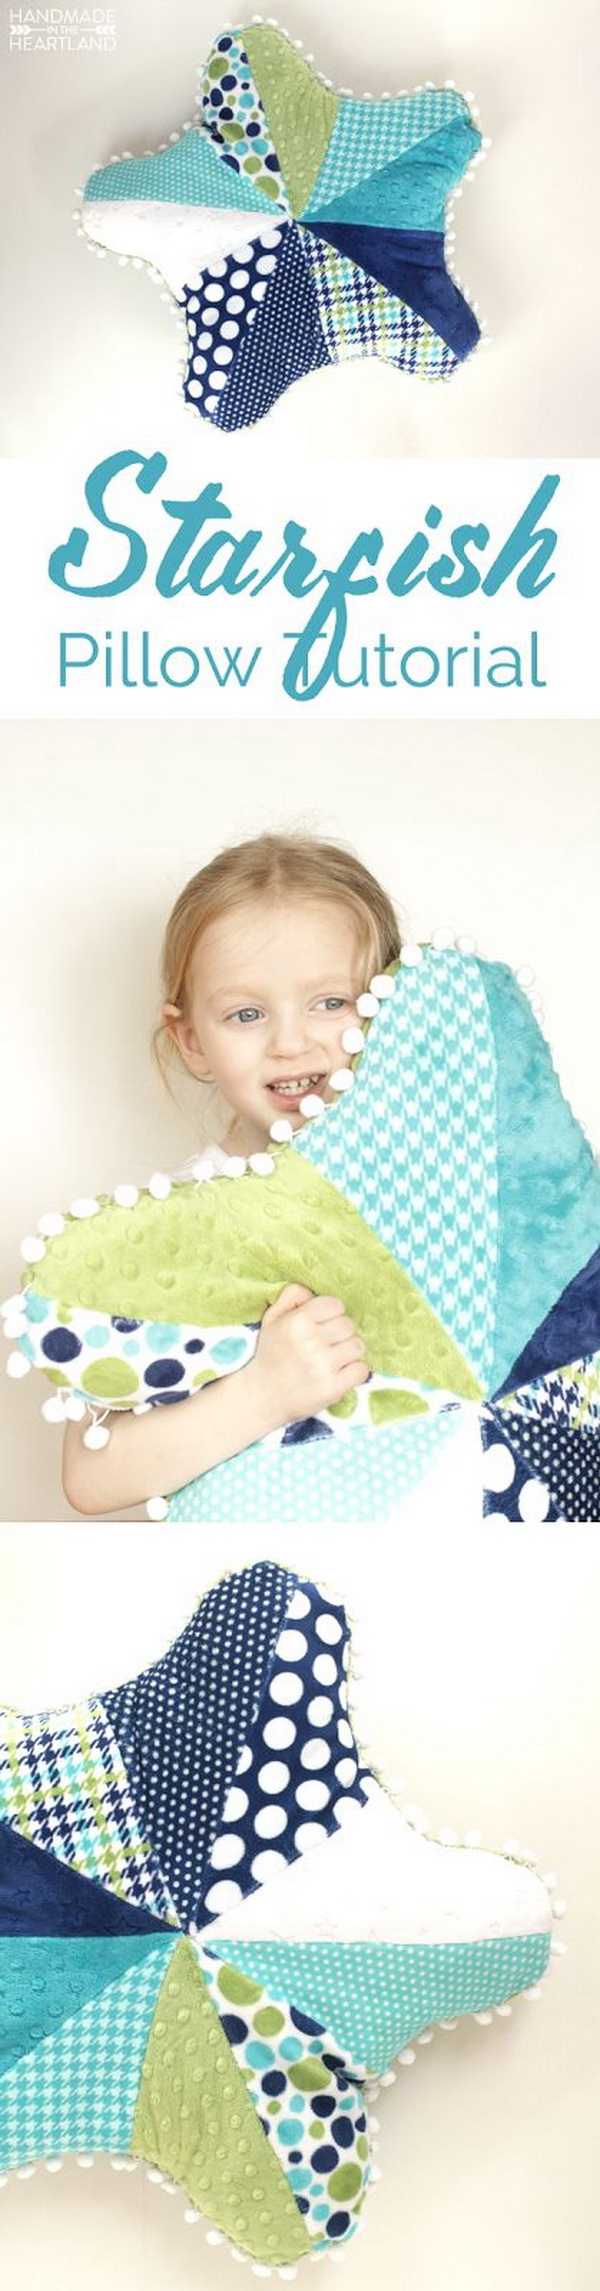 Cute Starfish Pillow. A fun and easy sewing project that you can complete in an afternoon! Definitely add a bright, cozy touch to your sofa or a little girl's bed!